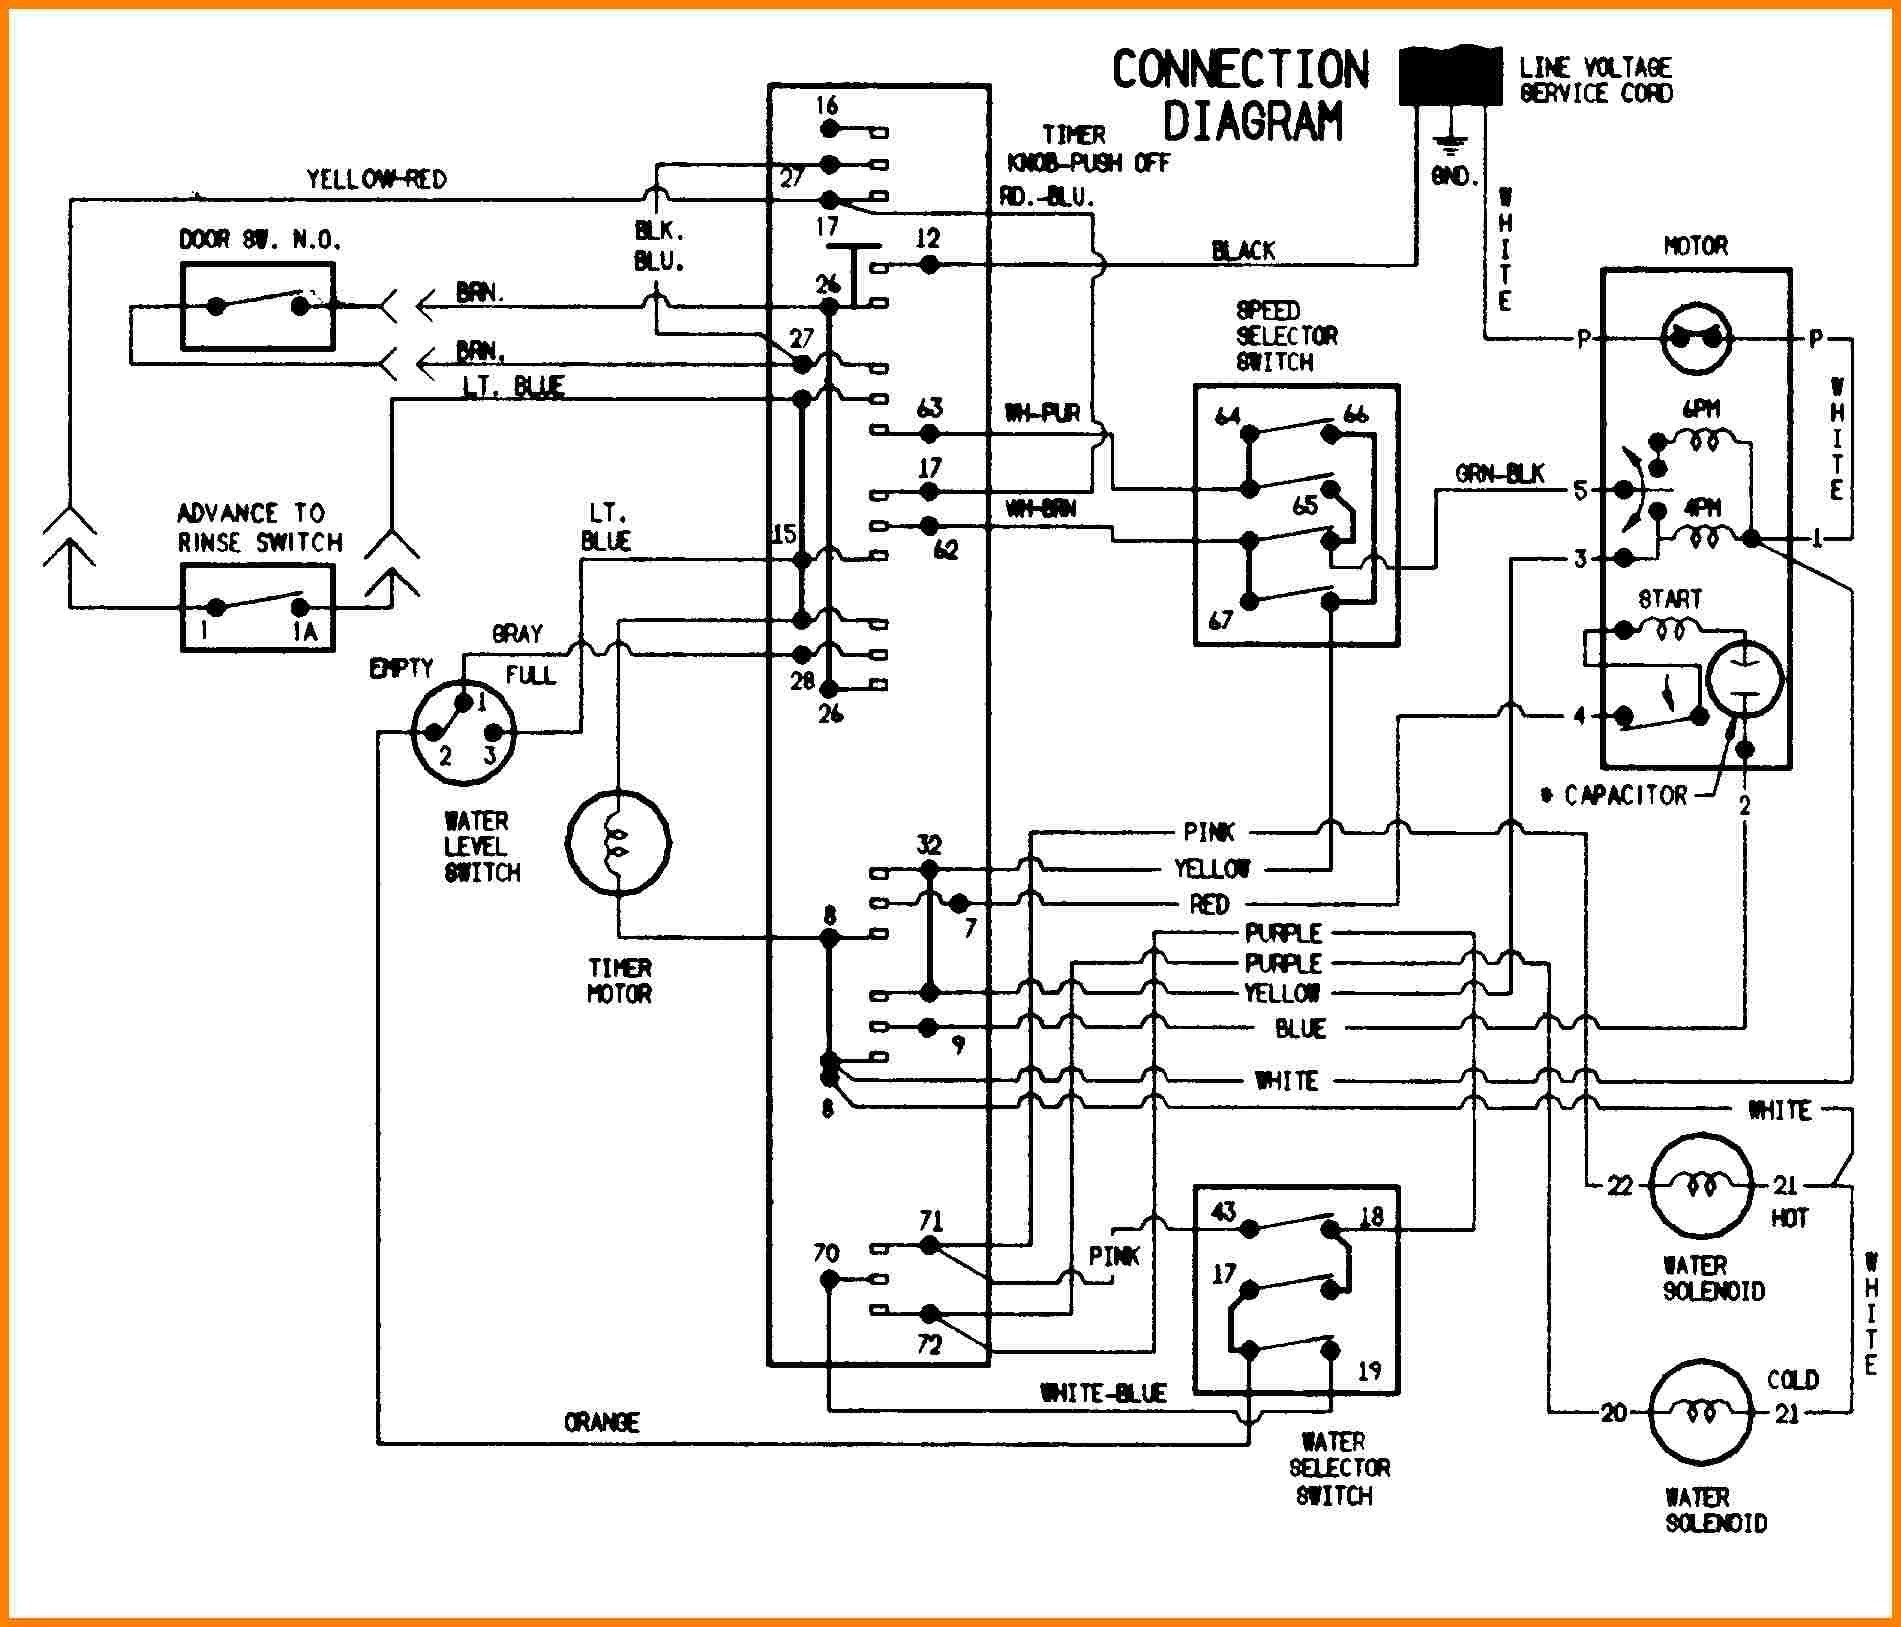 DIAGRAM] Hoover Washing Machine Wiring Diagram FULL Version ... on